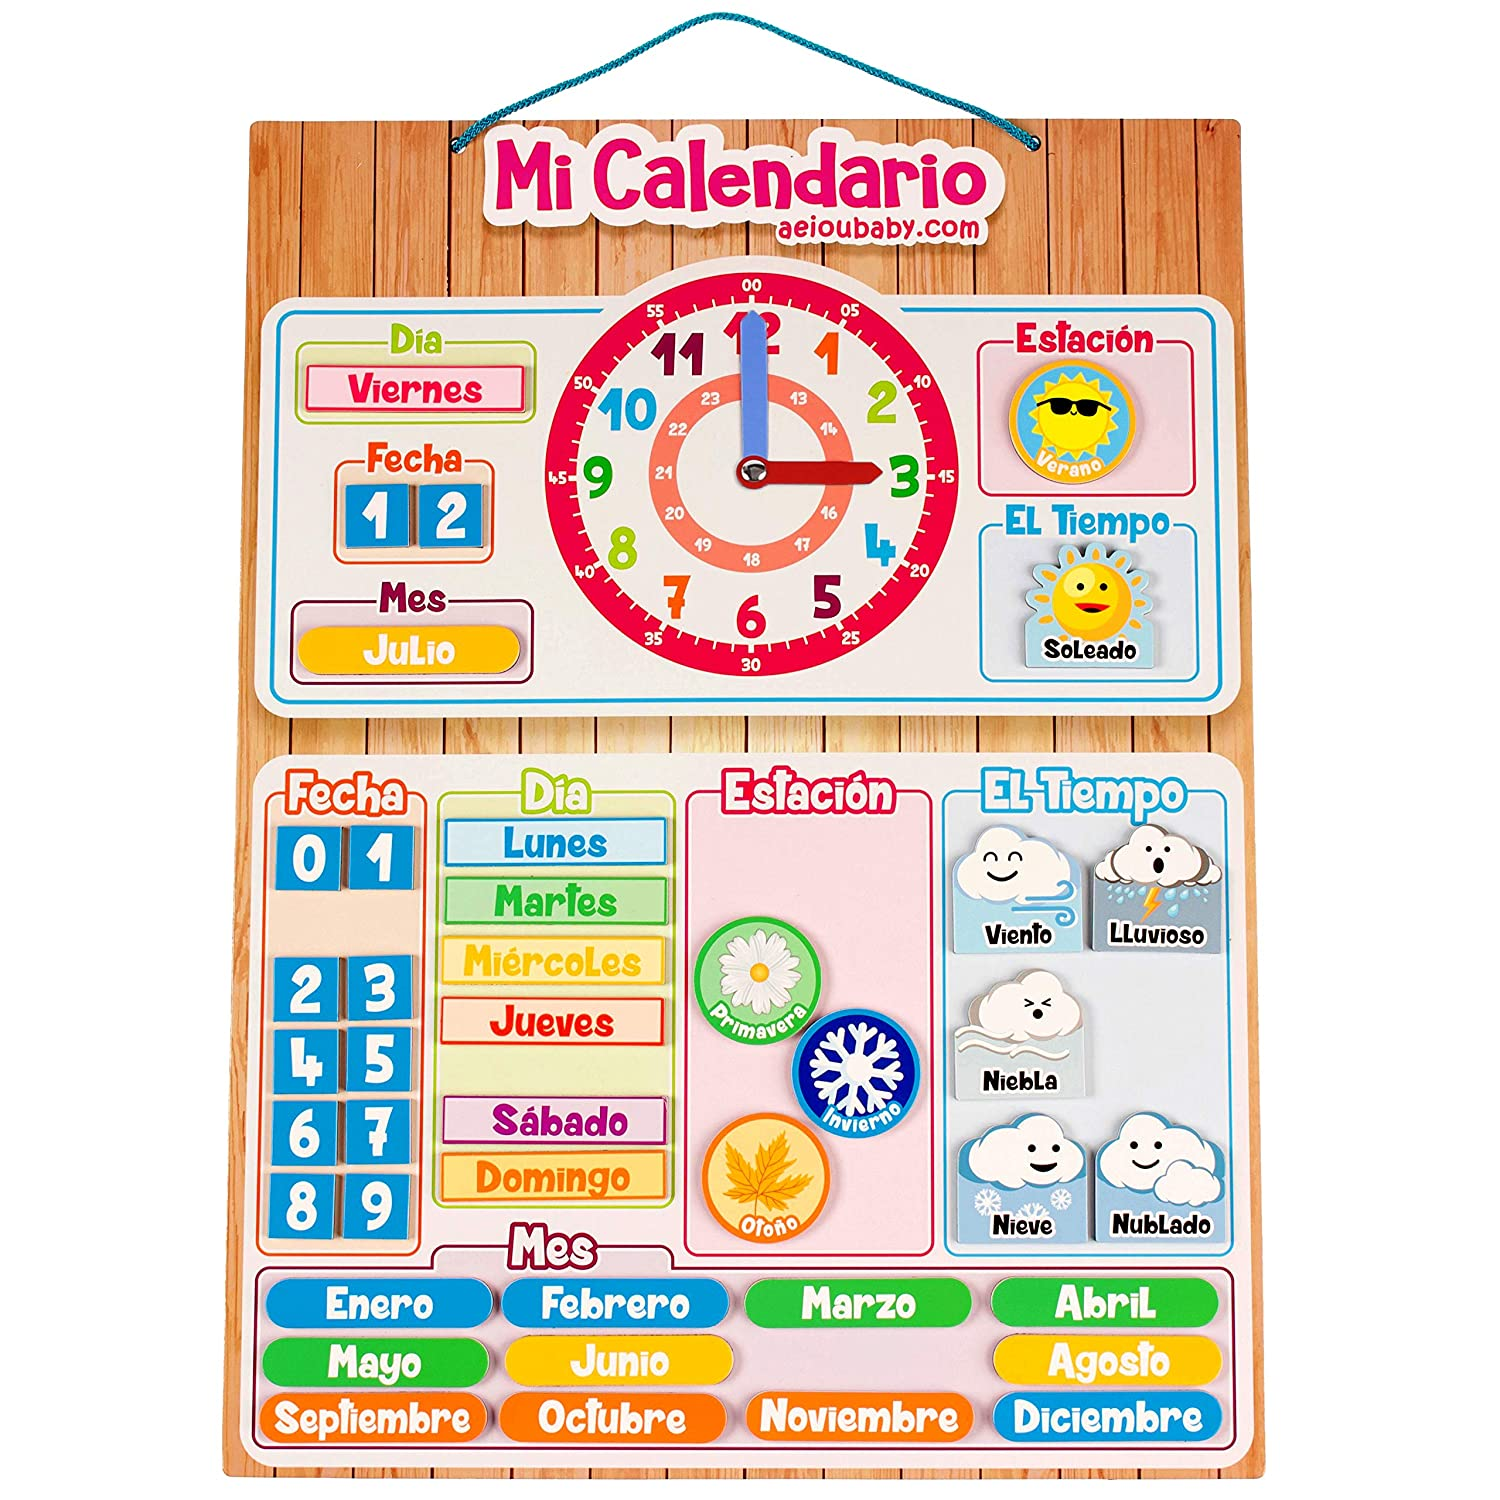 Calendario Julio 2019 Mr Wonderful.Aeioubaby Com Calendar Clock Magnetic For Wall Or Refrigerator Date Weather Time 17x12 6 In